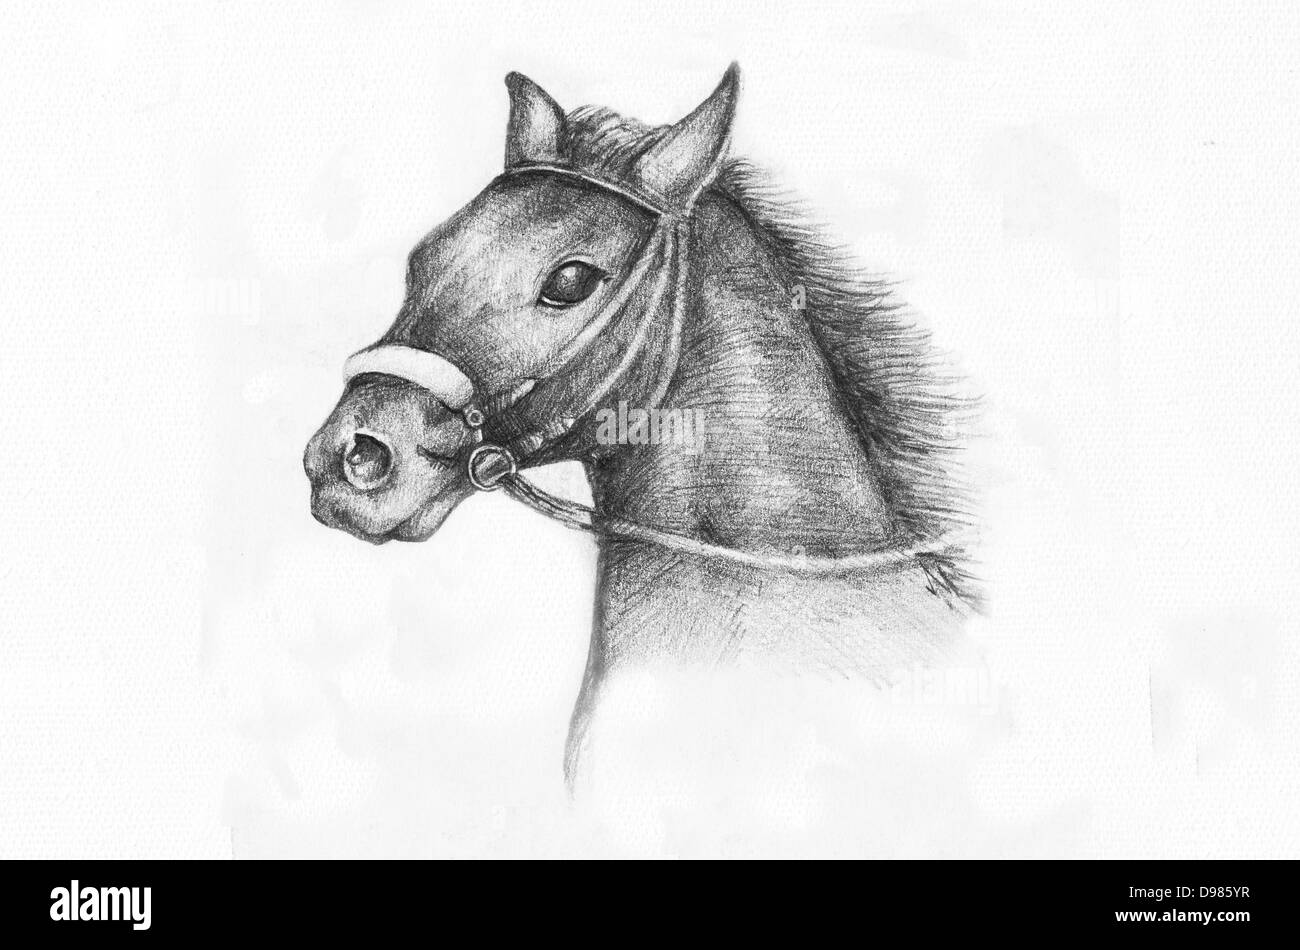 Horse drawing stock photos horse drawing stock images alamy for Disegni di cavalli a matita